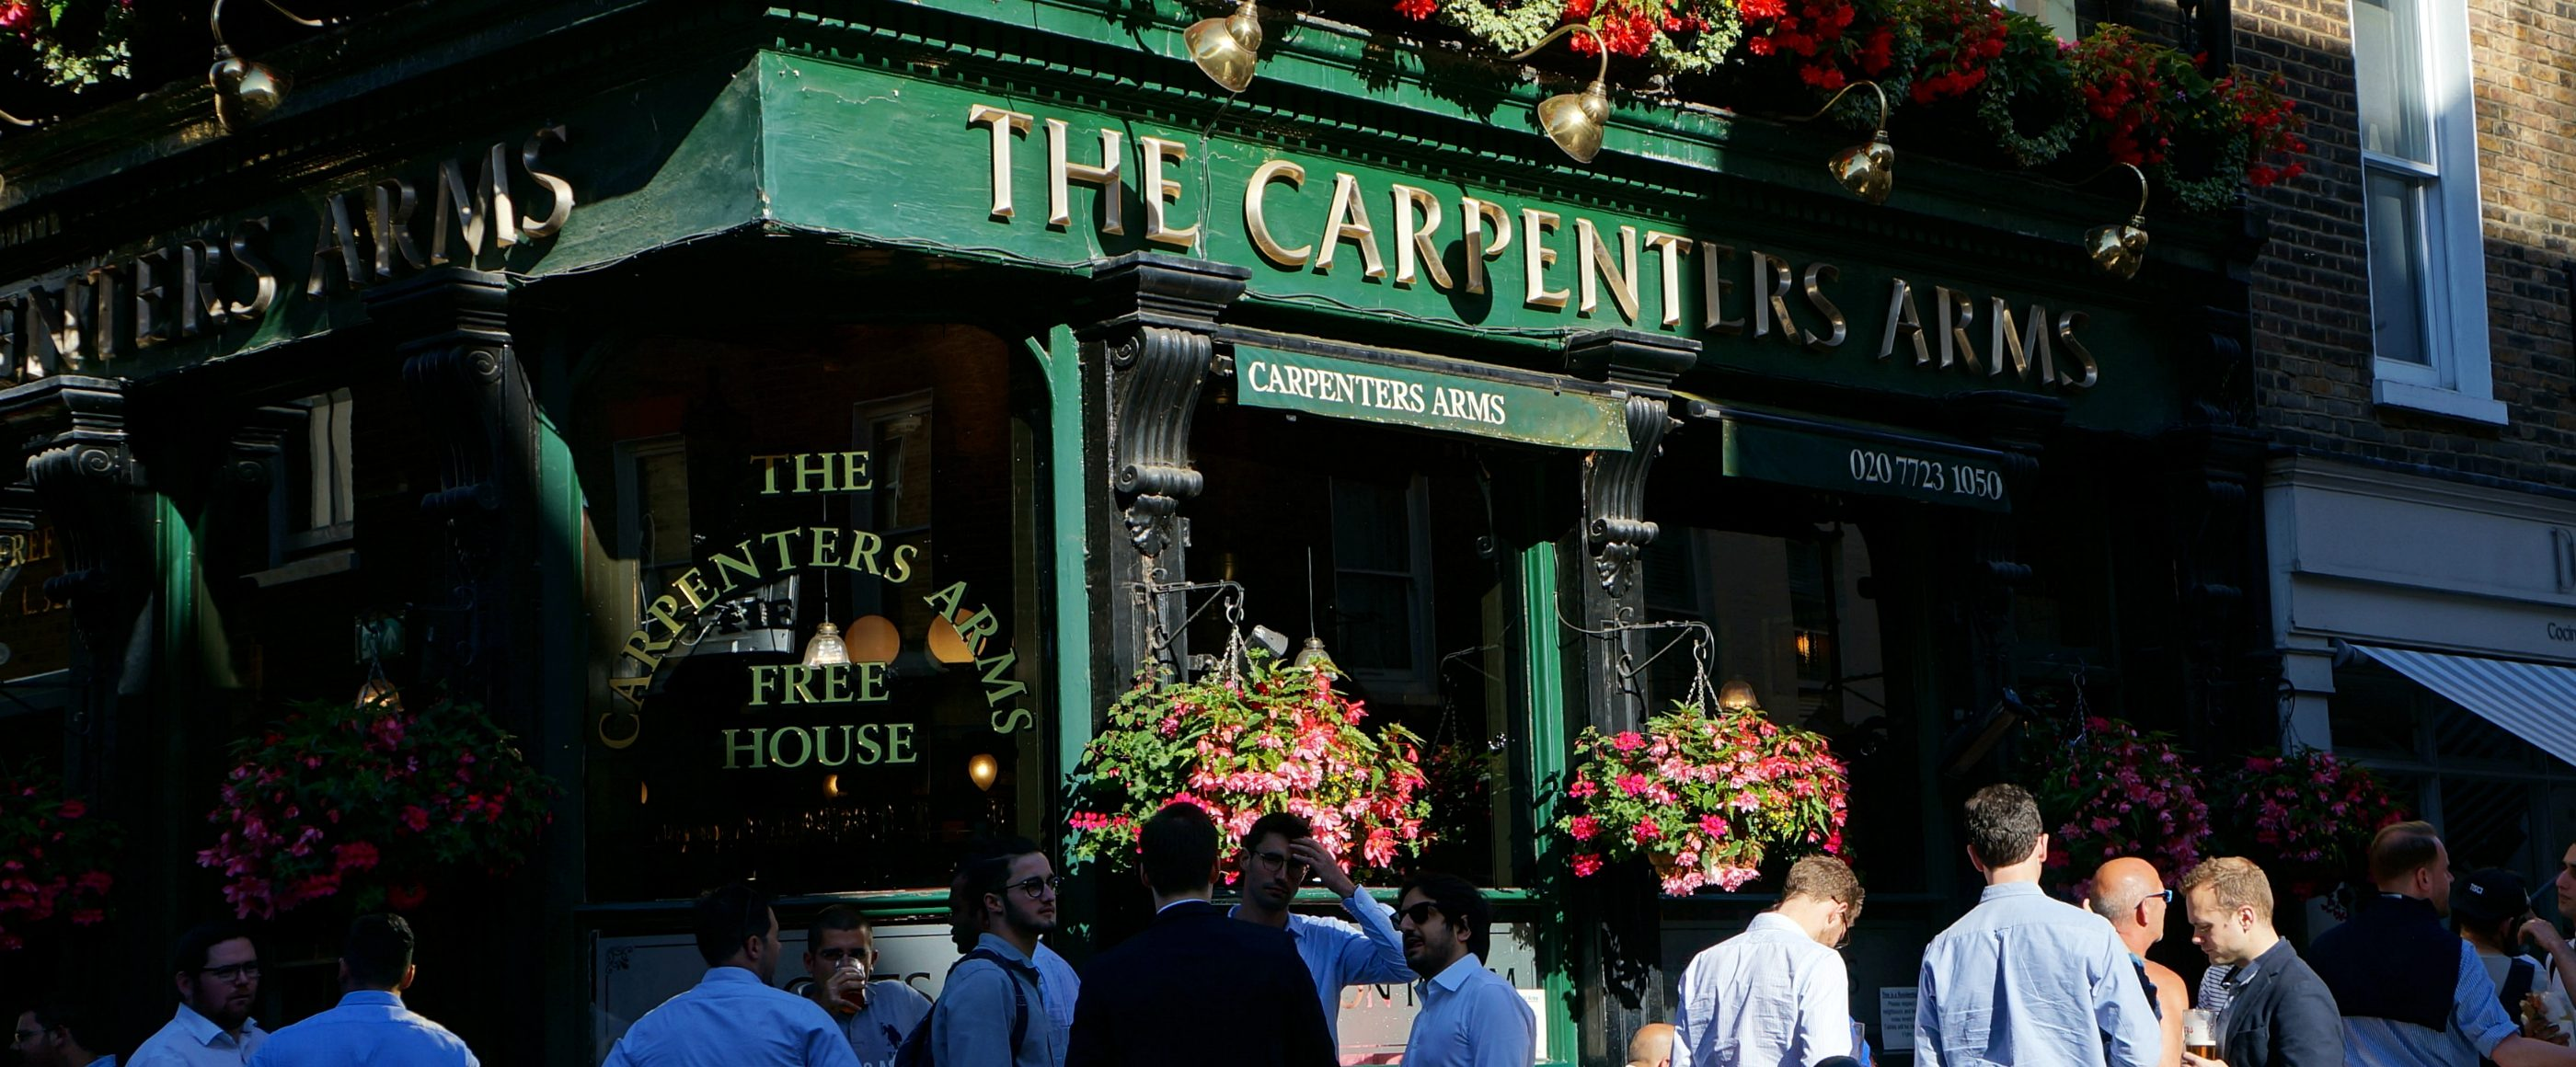 The Carpenters Arms | Pub with Live sports | Marylebone